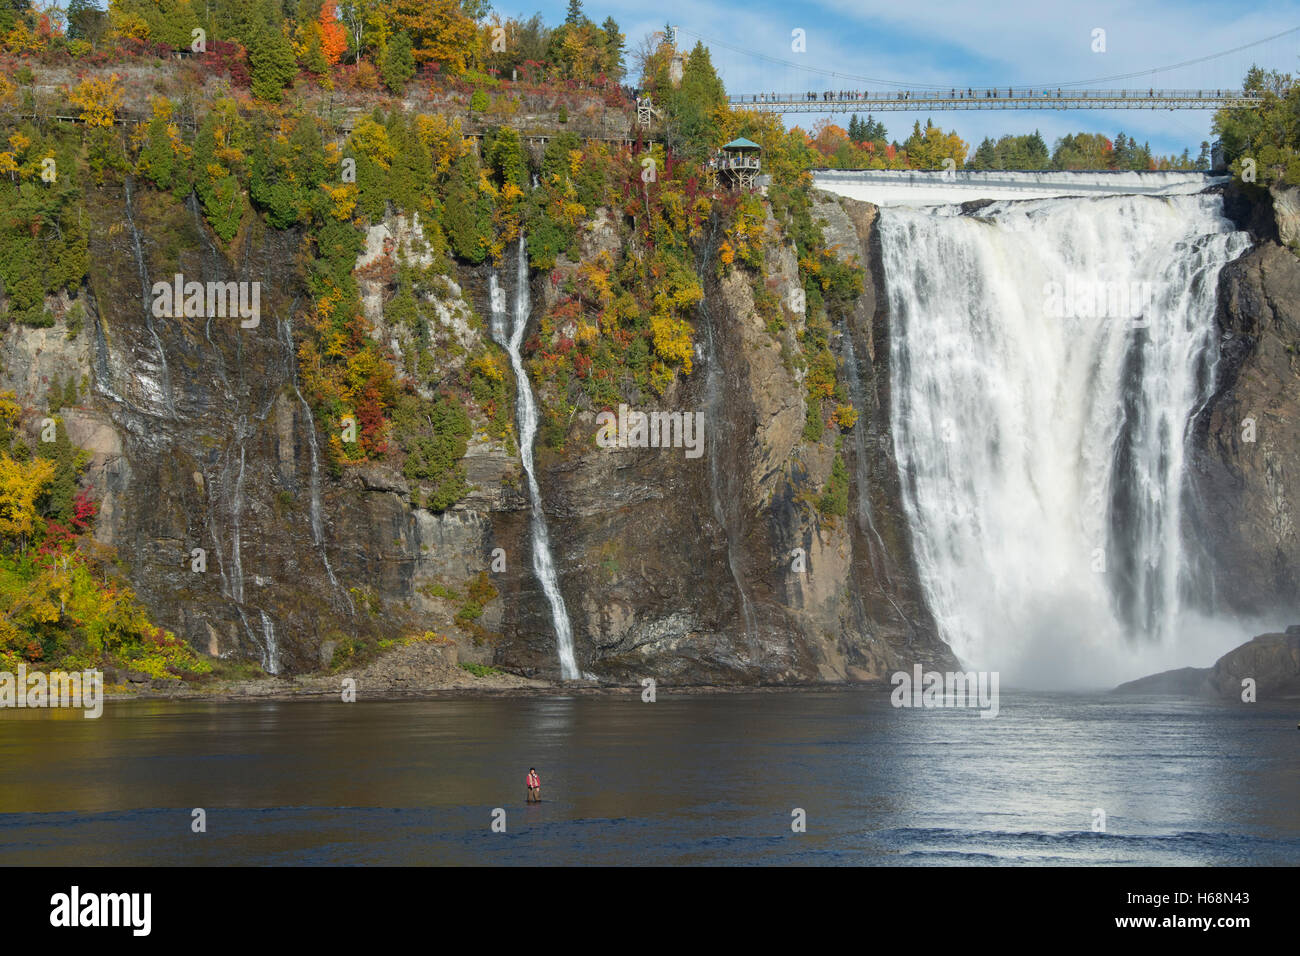 Klettersteig Quebec : Montmorency falls waterfall quebec stockfotos